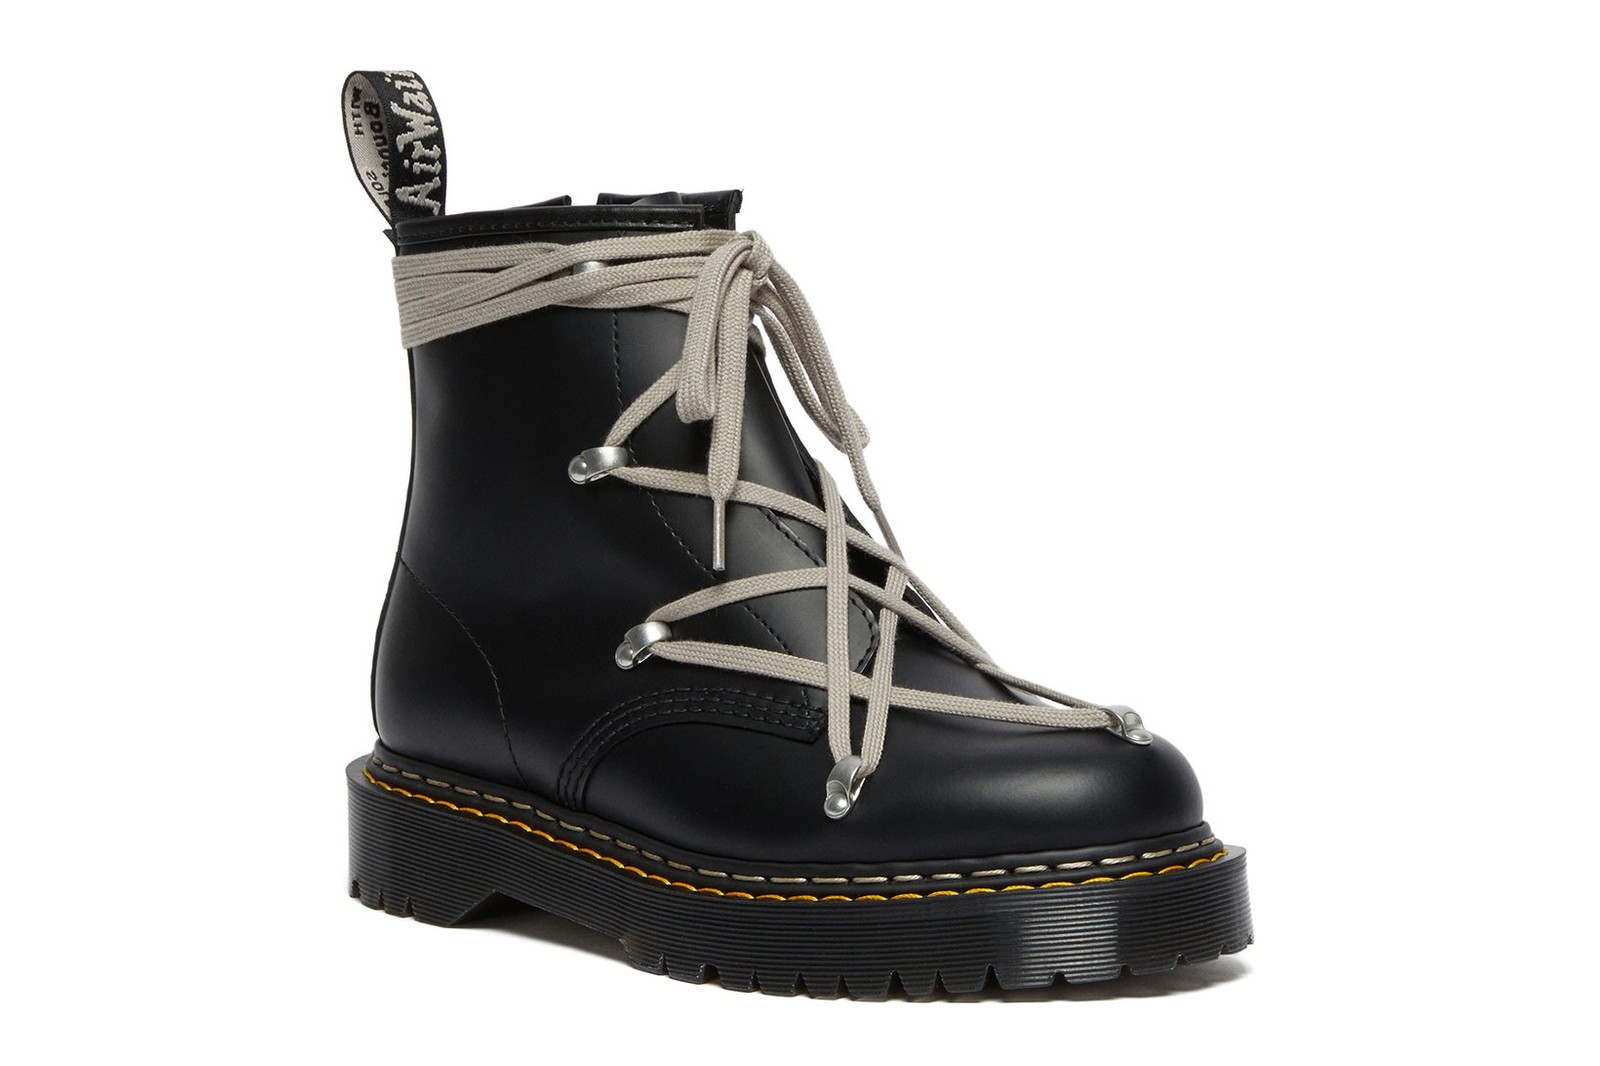 rick owens dr martens 1460 bex platform boots shoes collaboration release date where to buy